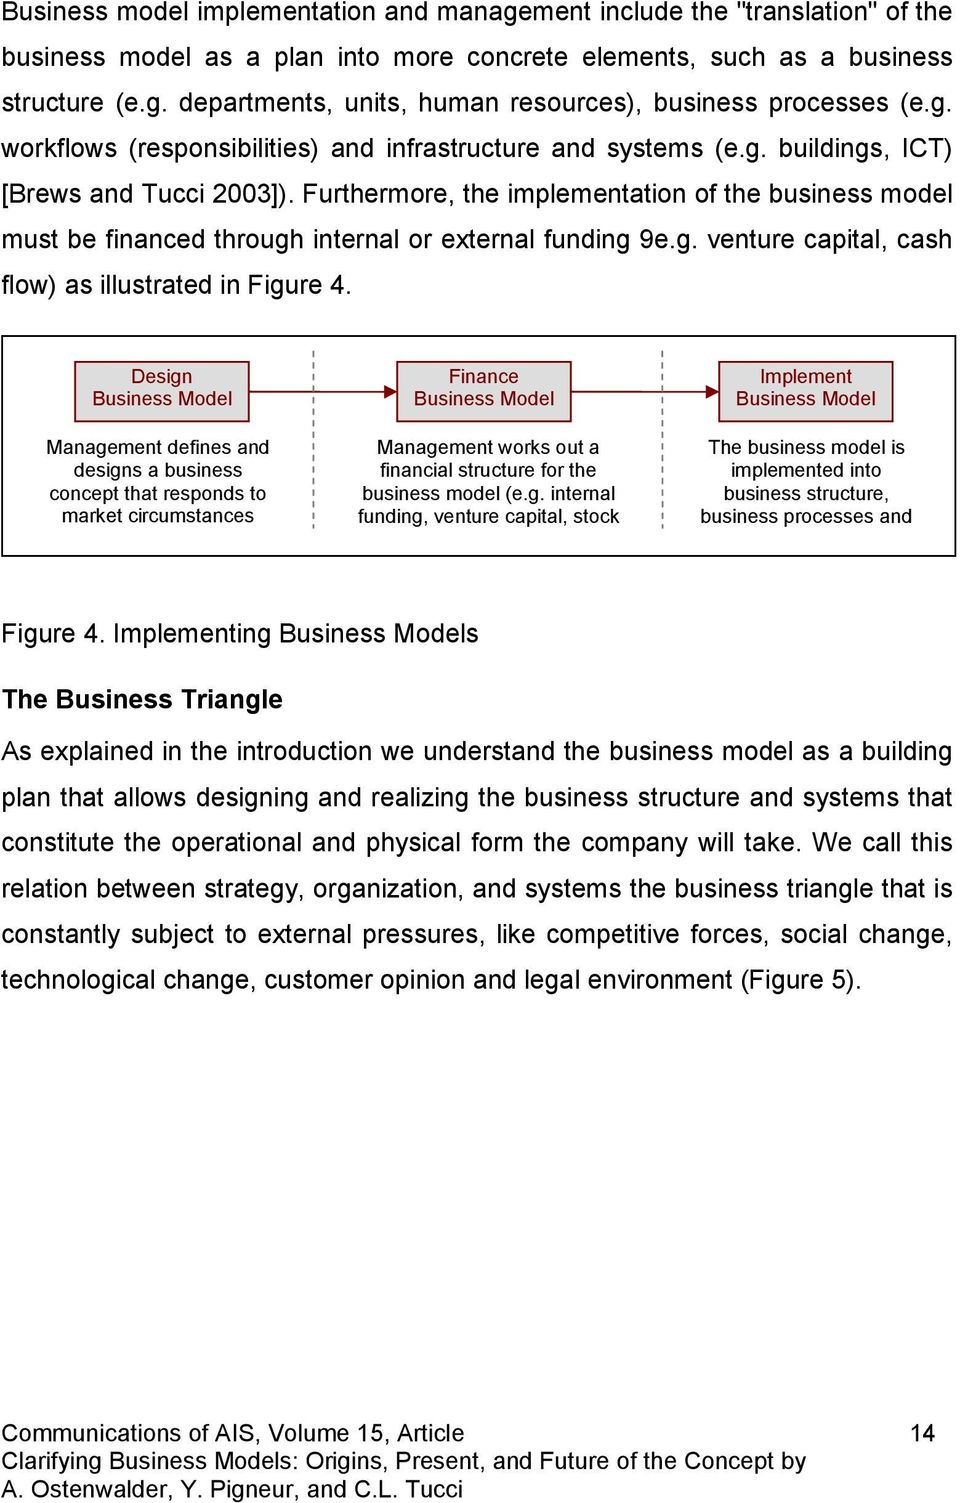 Furthermore, the implementation of the business model must be financed through internal or external funding 9e.g. venture capital, cash flow) as illustrated in Figure 4.